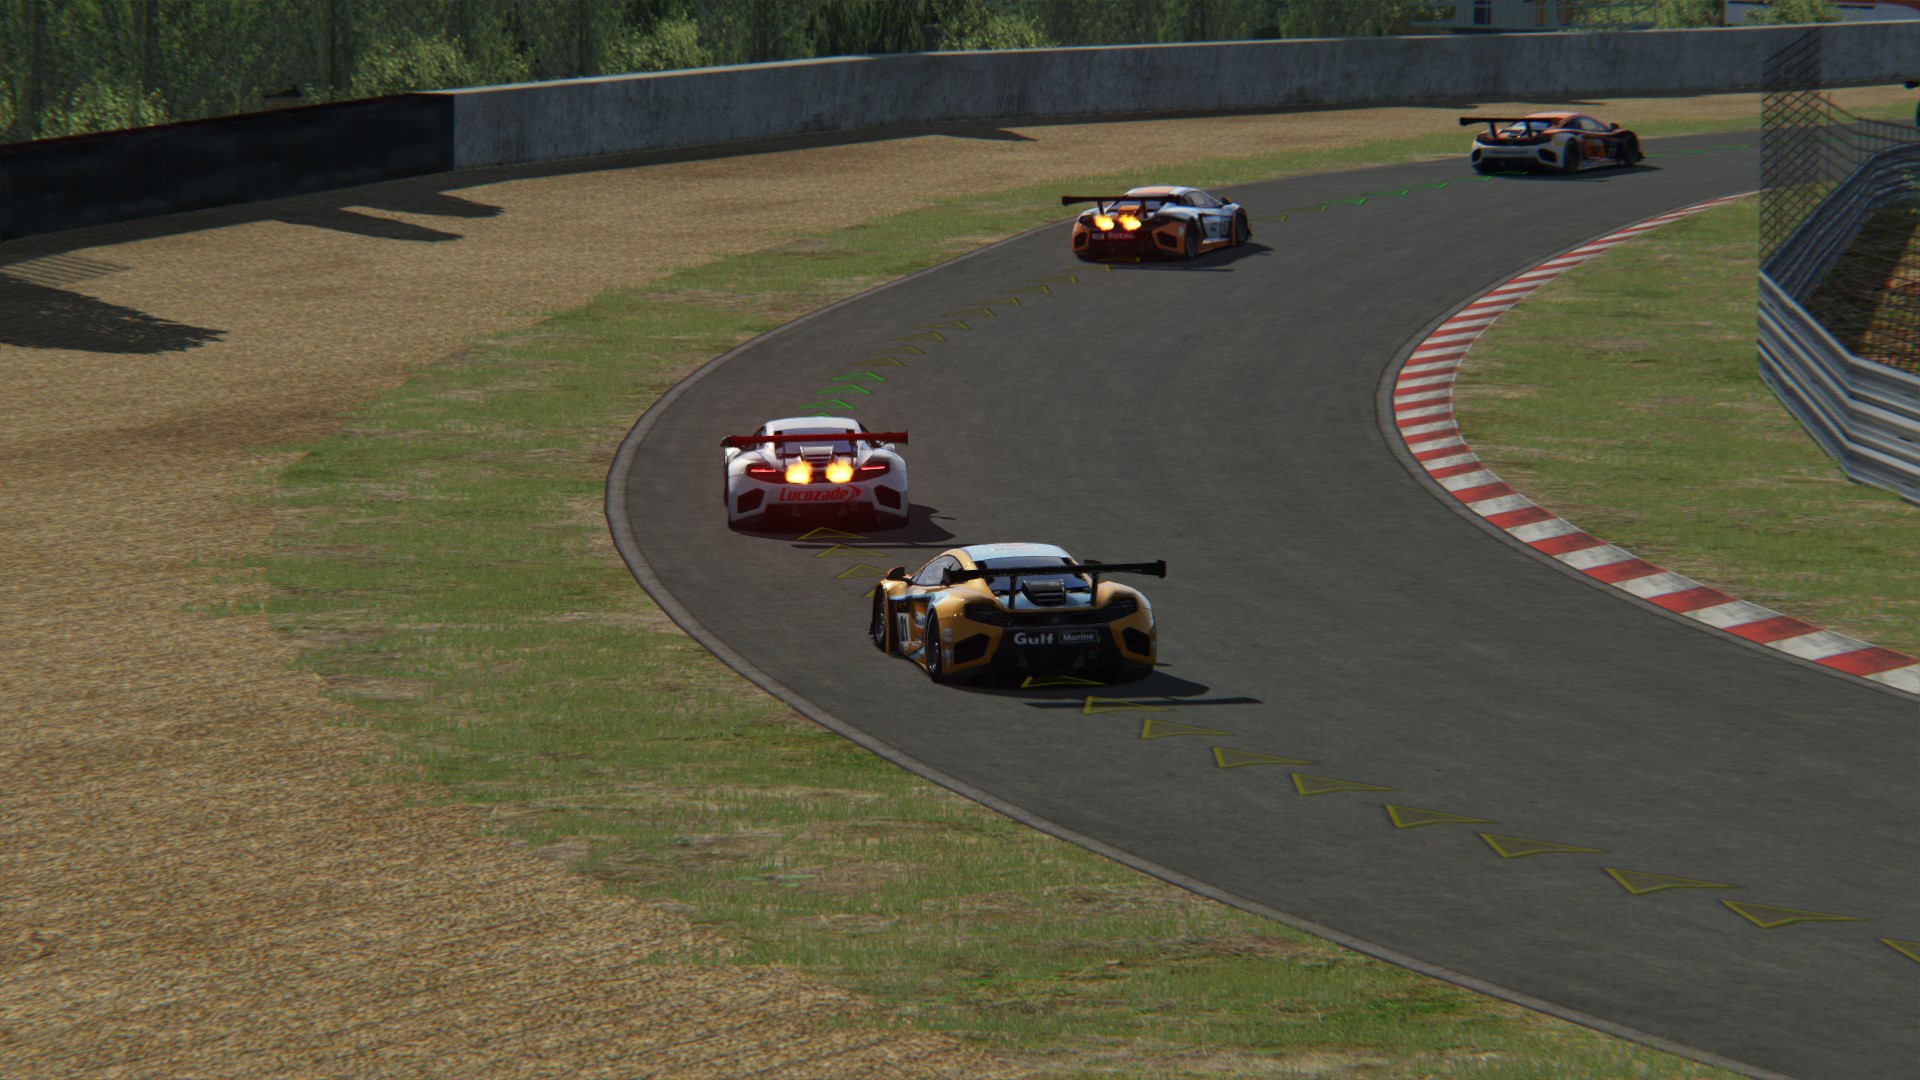 Screenshot_mclaren_mp412c_gt3_sportsland_sugo_7-4-116-10-21-6.jpg